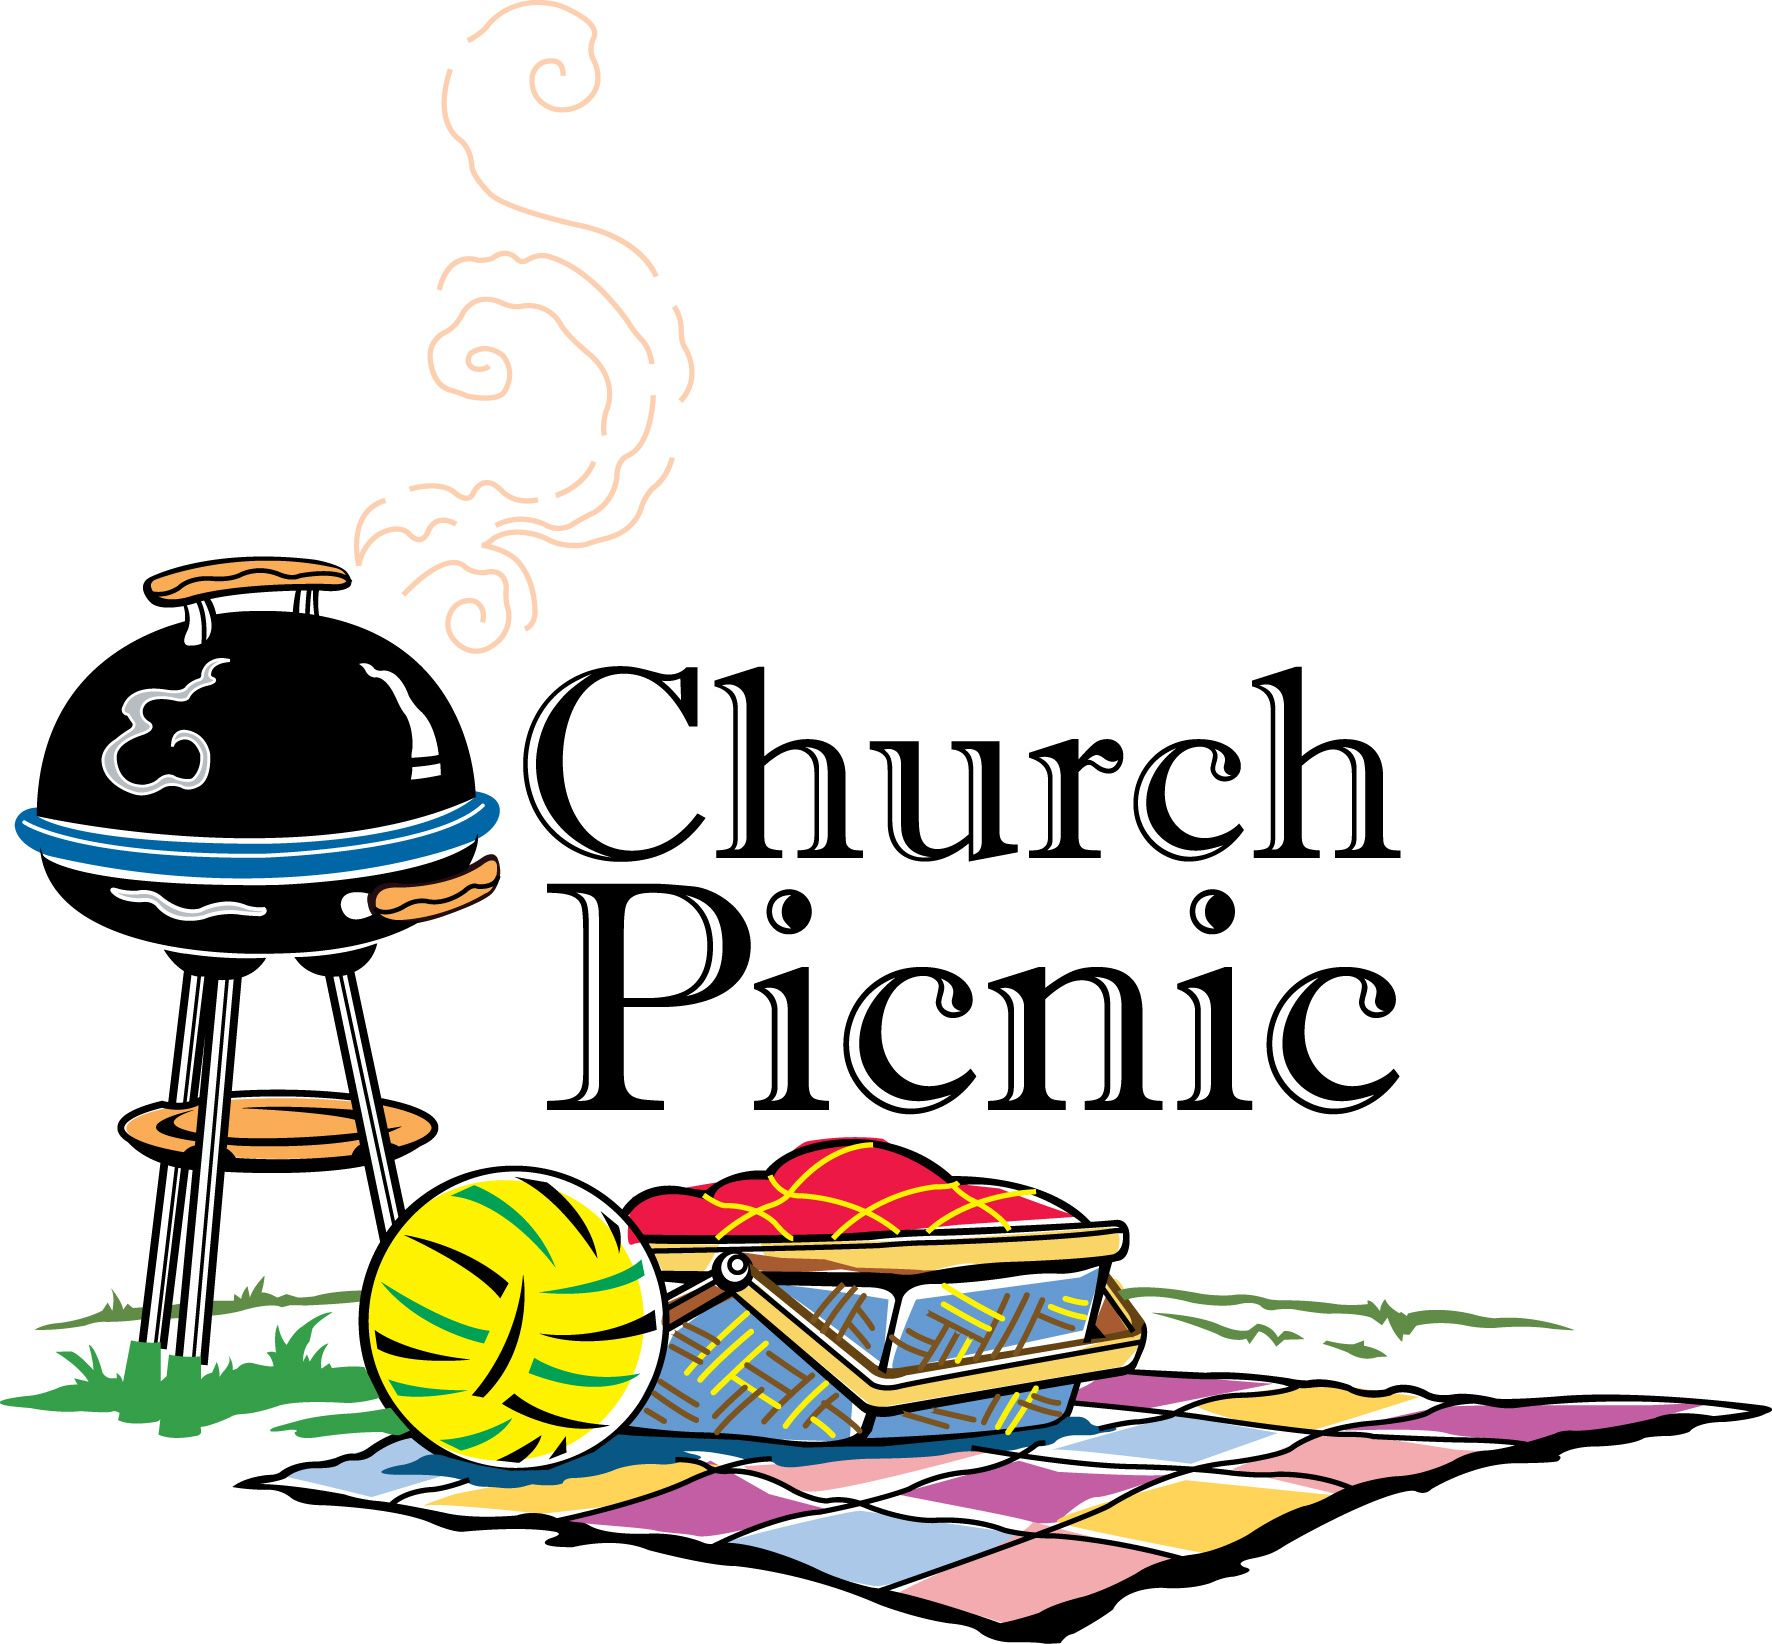 medium resolution of company picnic clipart clipart panda free clipart images